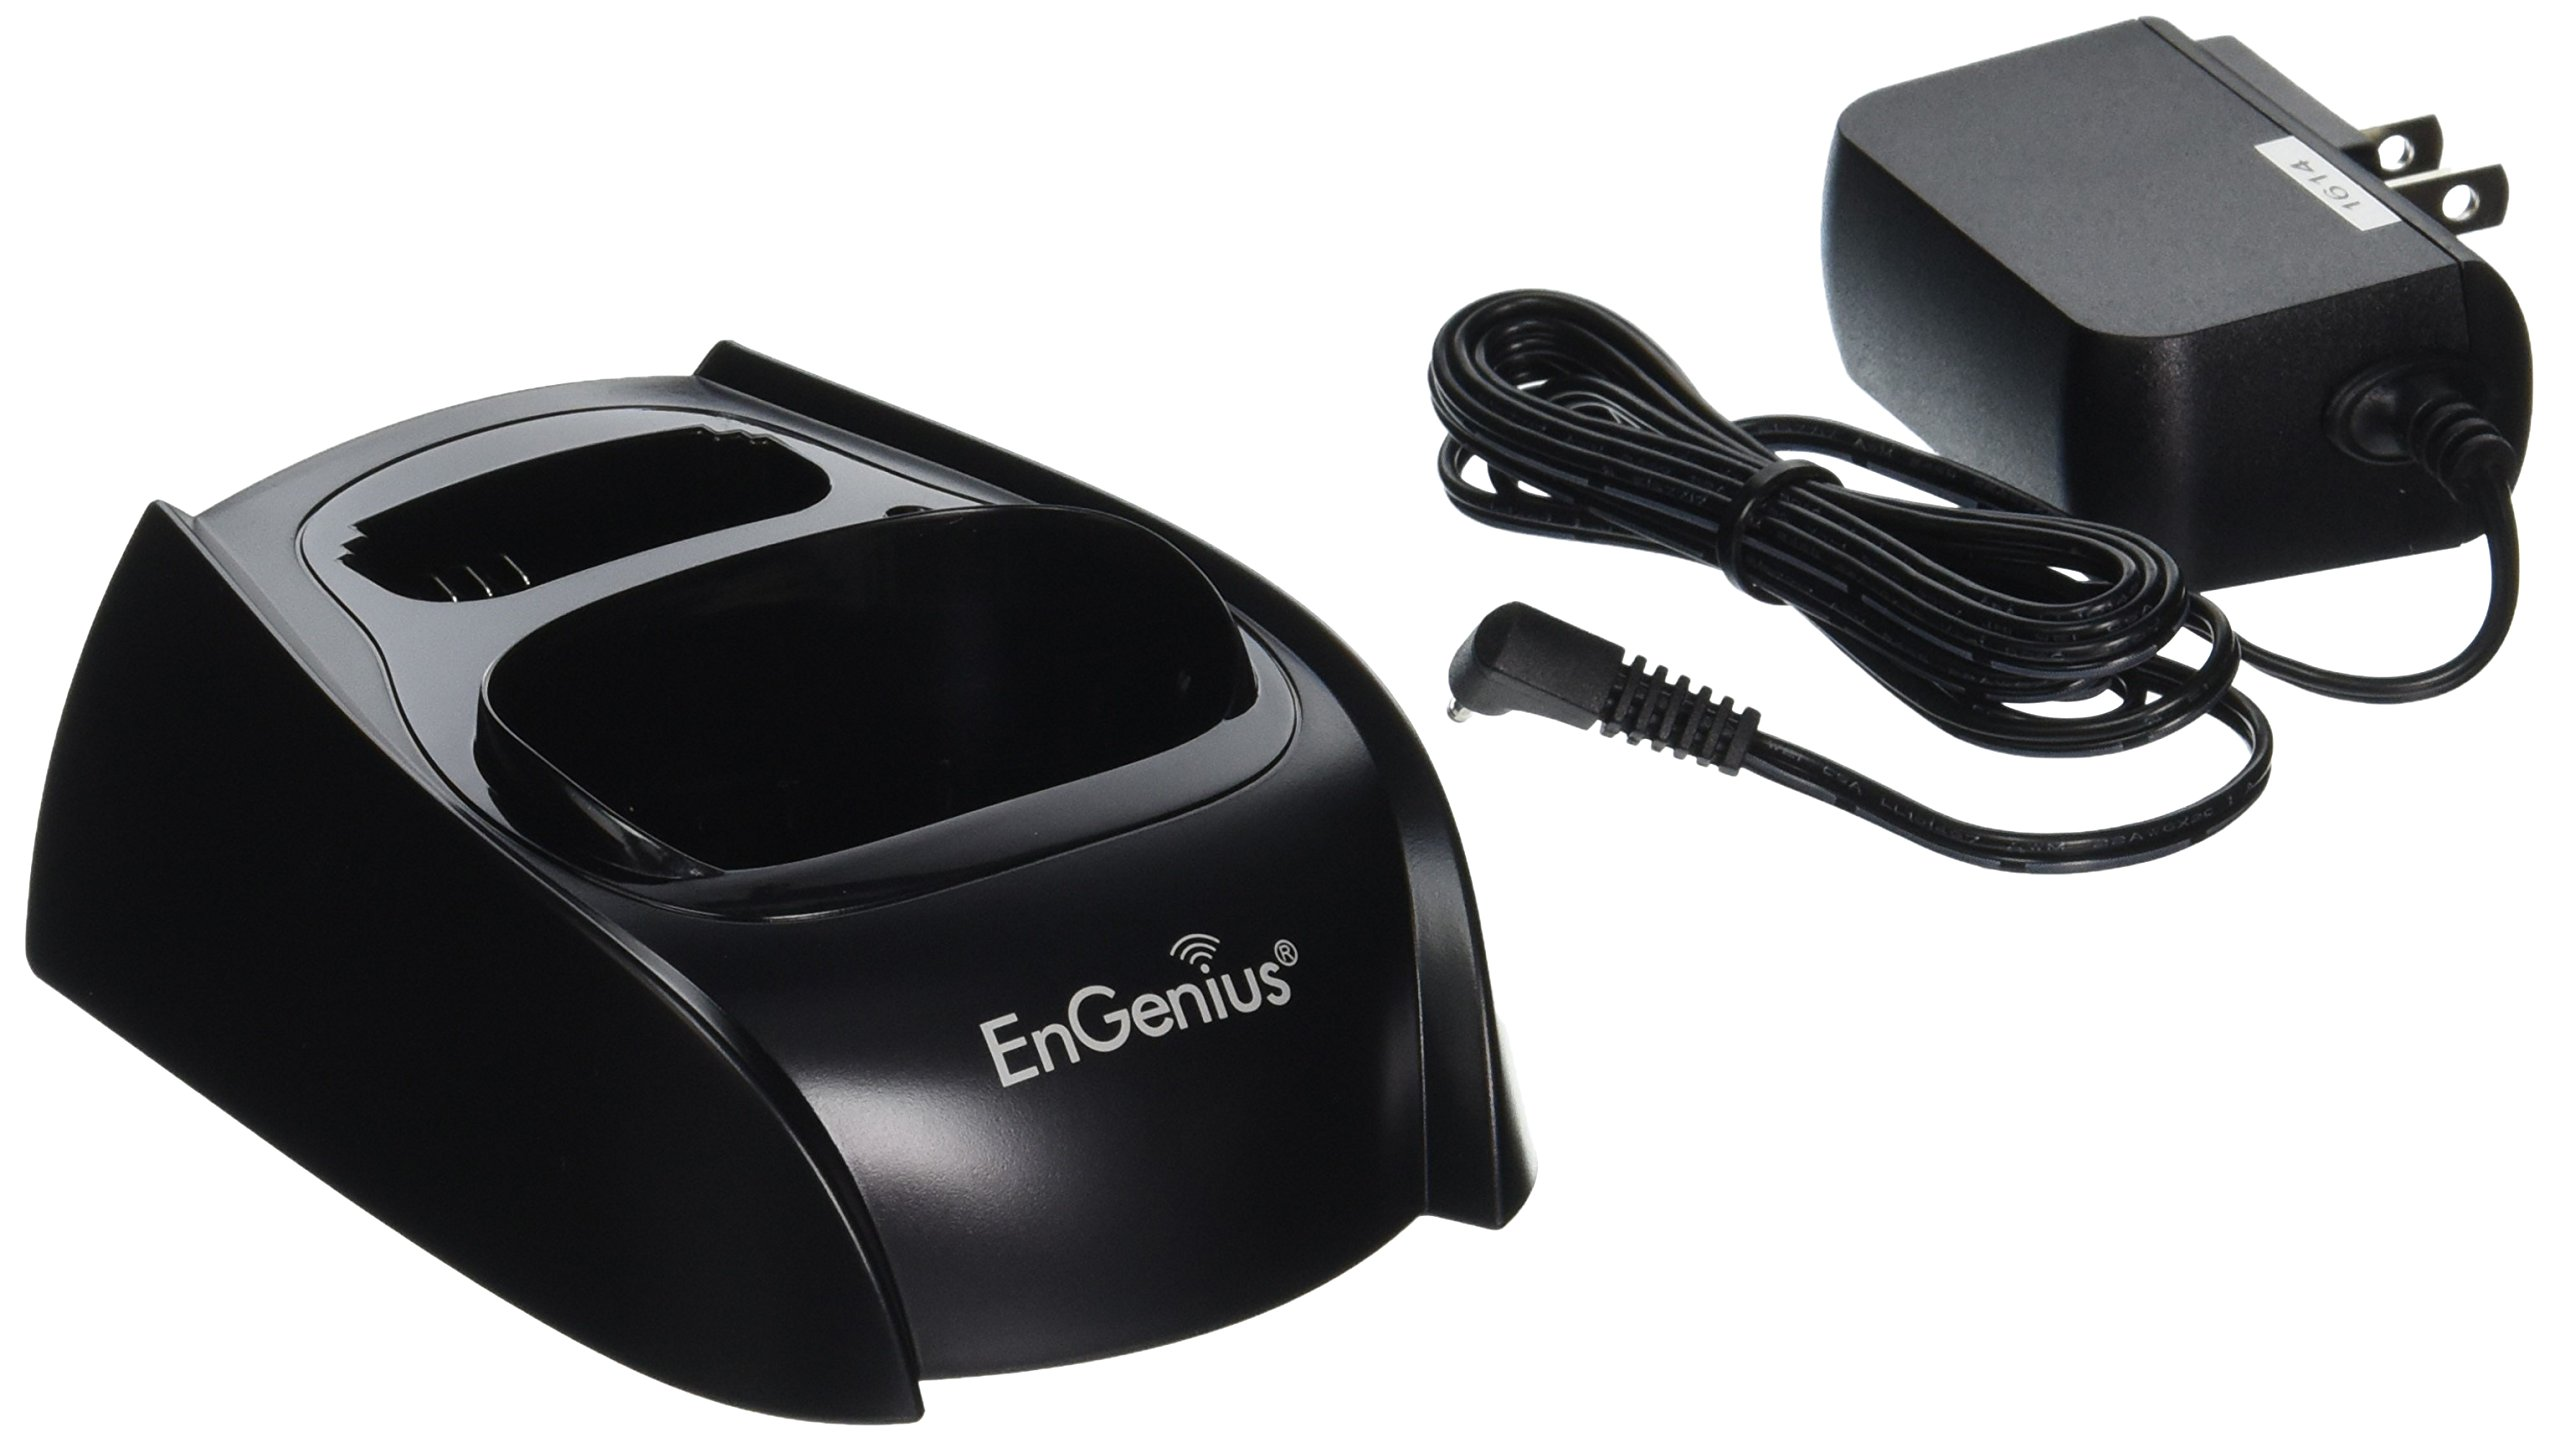 EnGenius Desktop Charger for Multiple Devices - Retail Packaging - Colorless/Unspecified by EnGenius